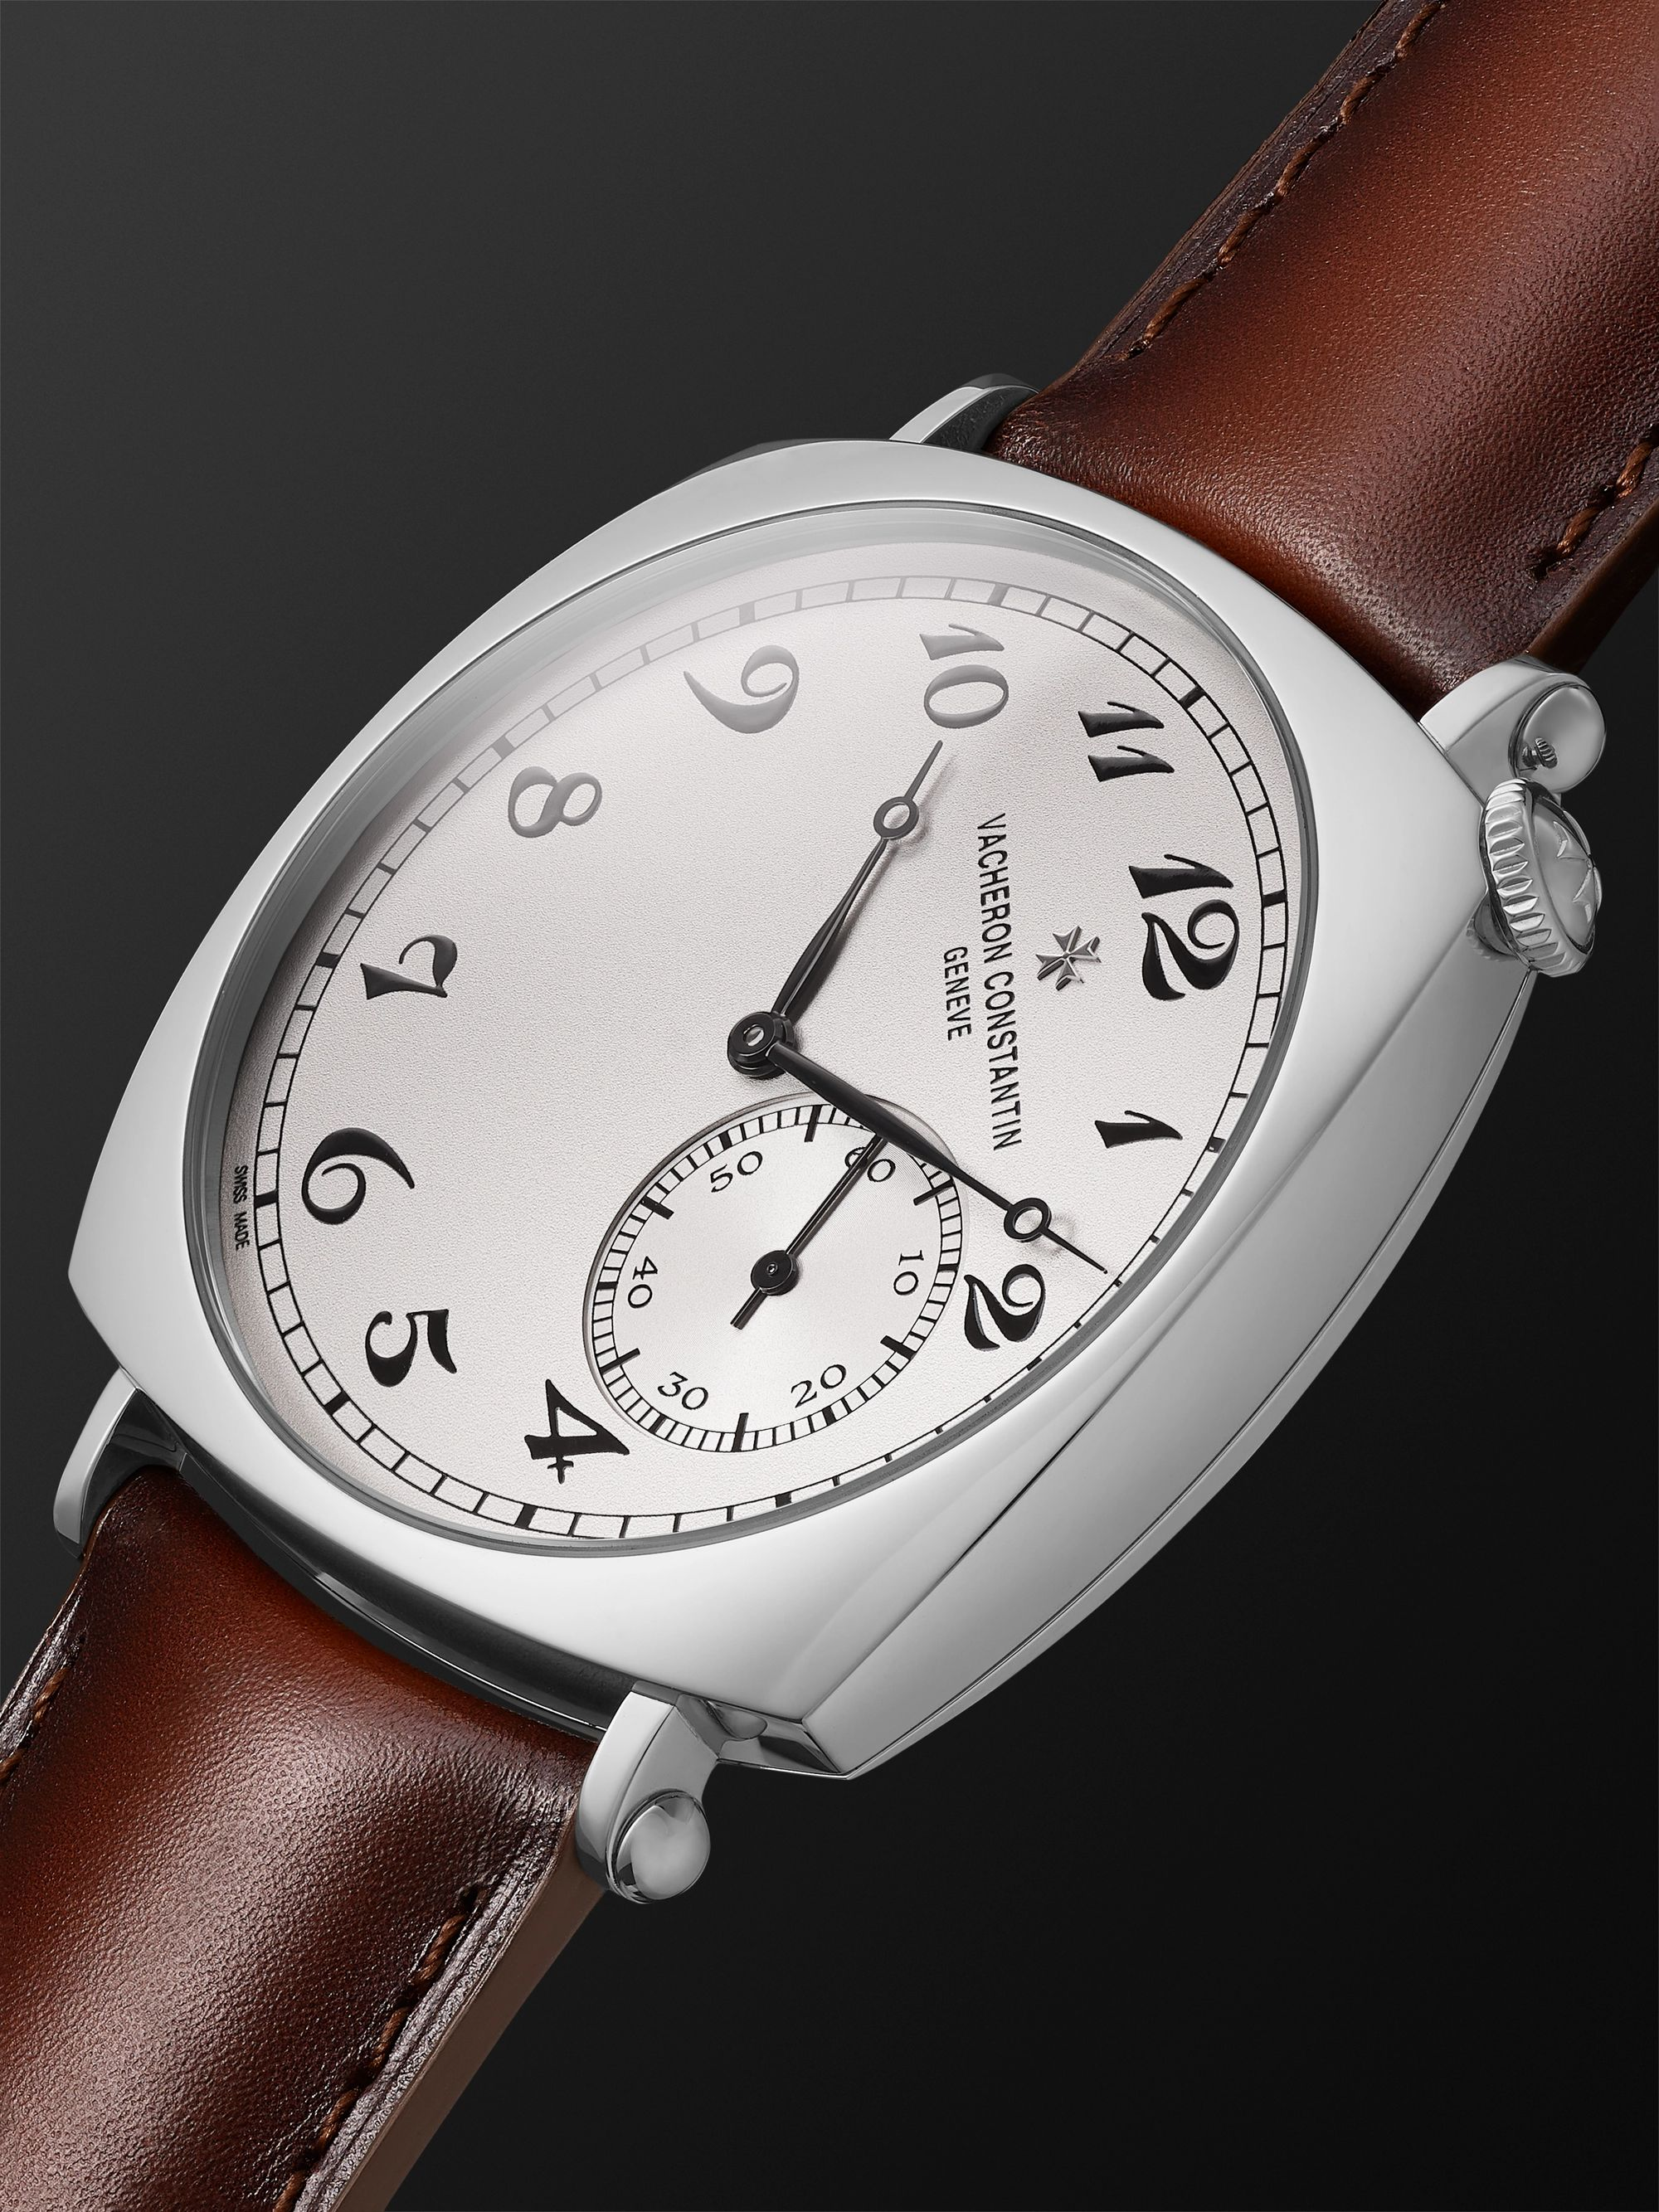 VACHERON CONSTANTIN Historiques American 1921 Hand-Wound 40mm 18-Karat White Gold and Leather Watch, Ref. No. 82035/000G-B735